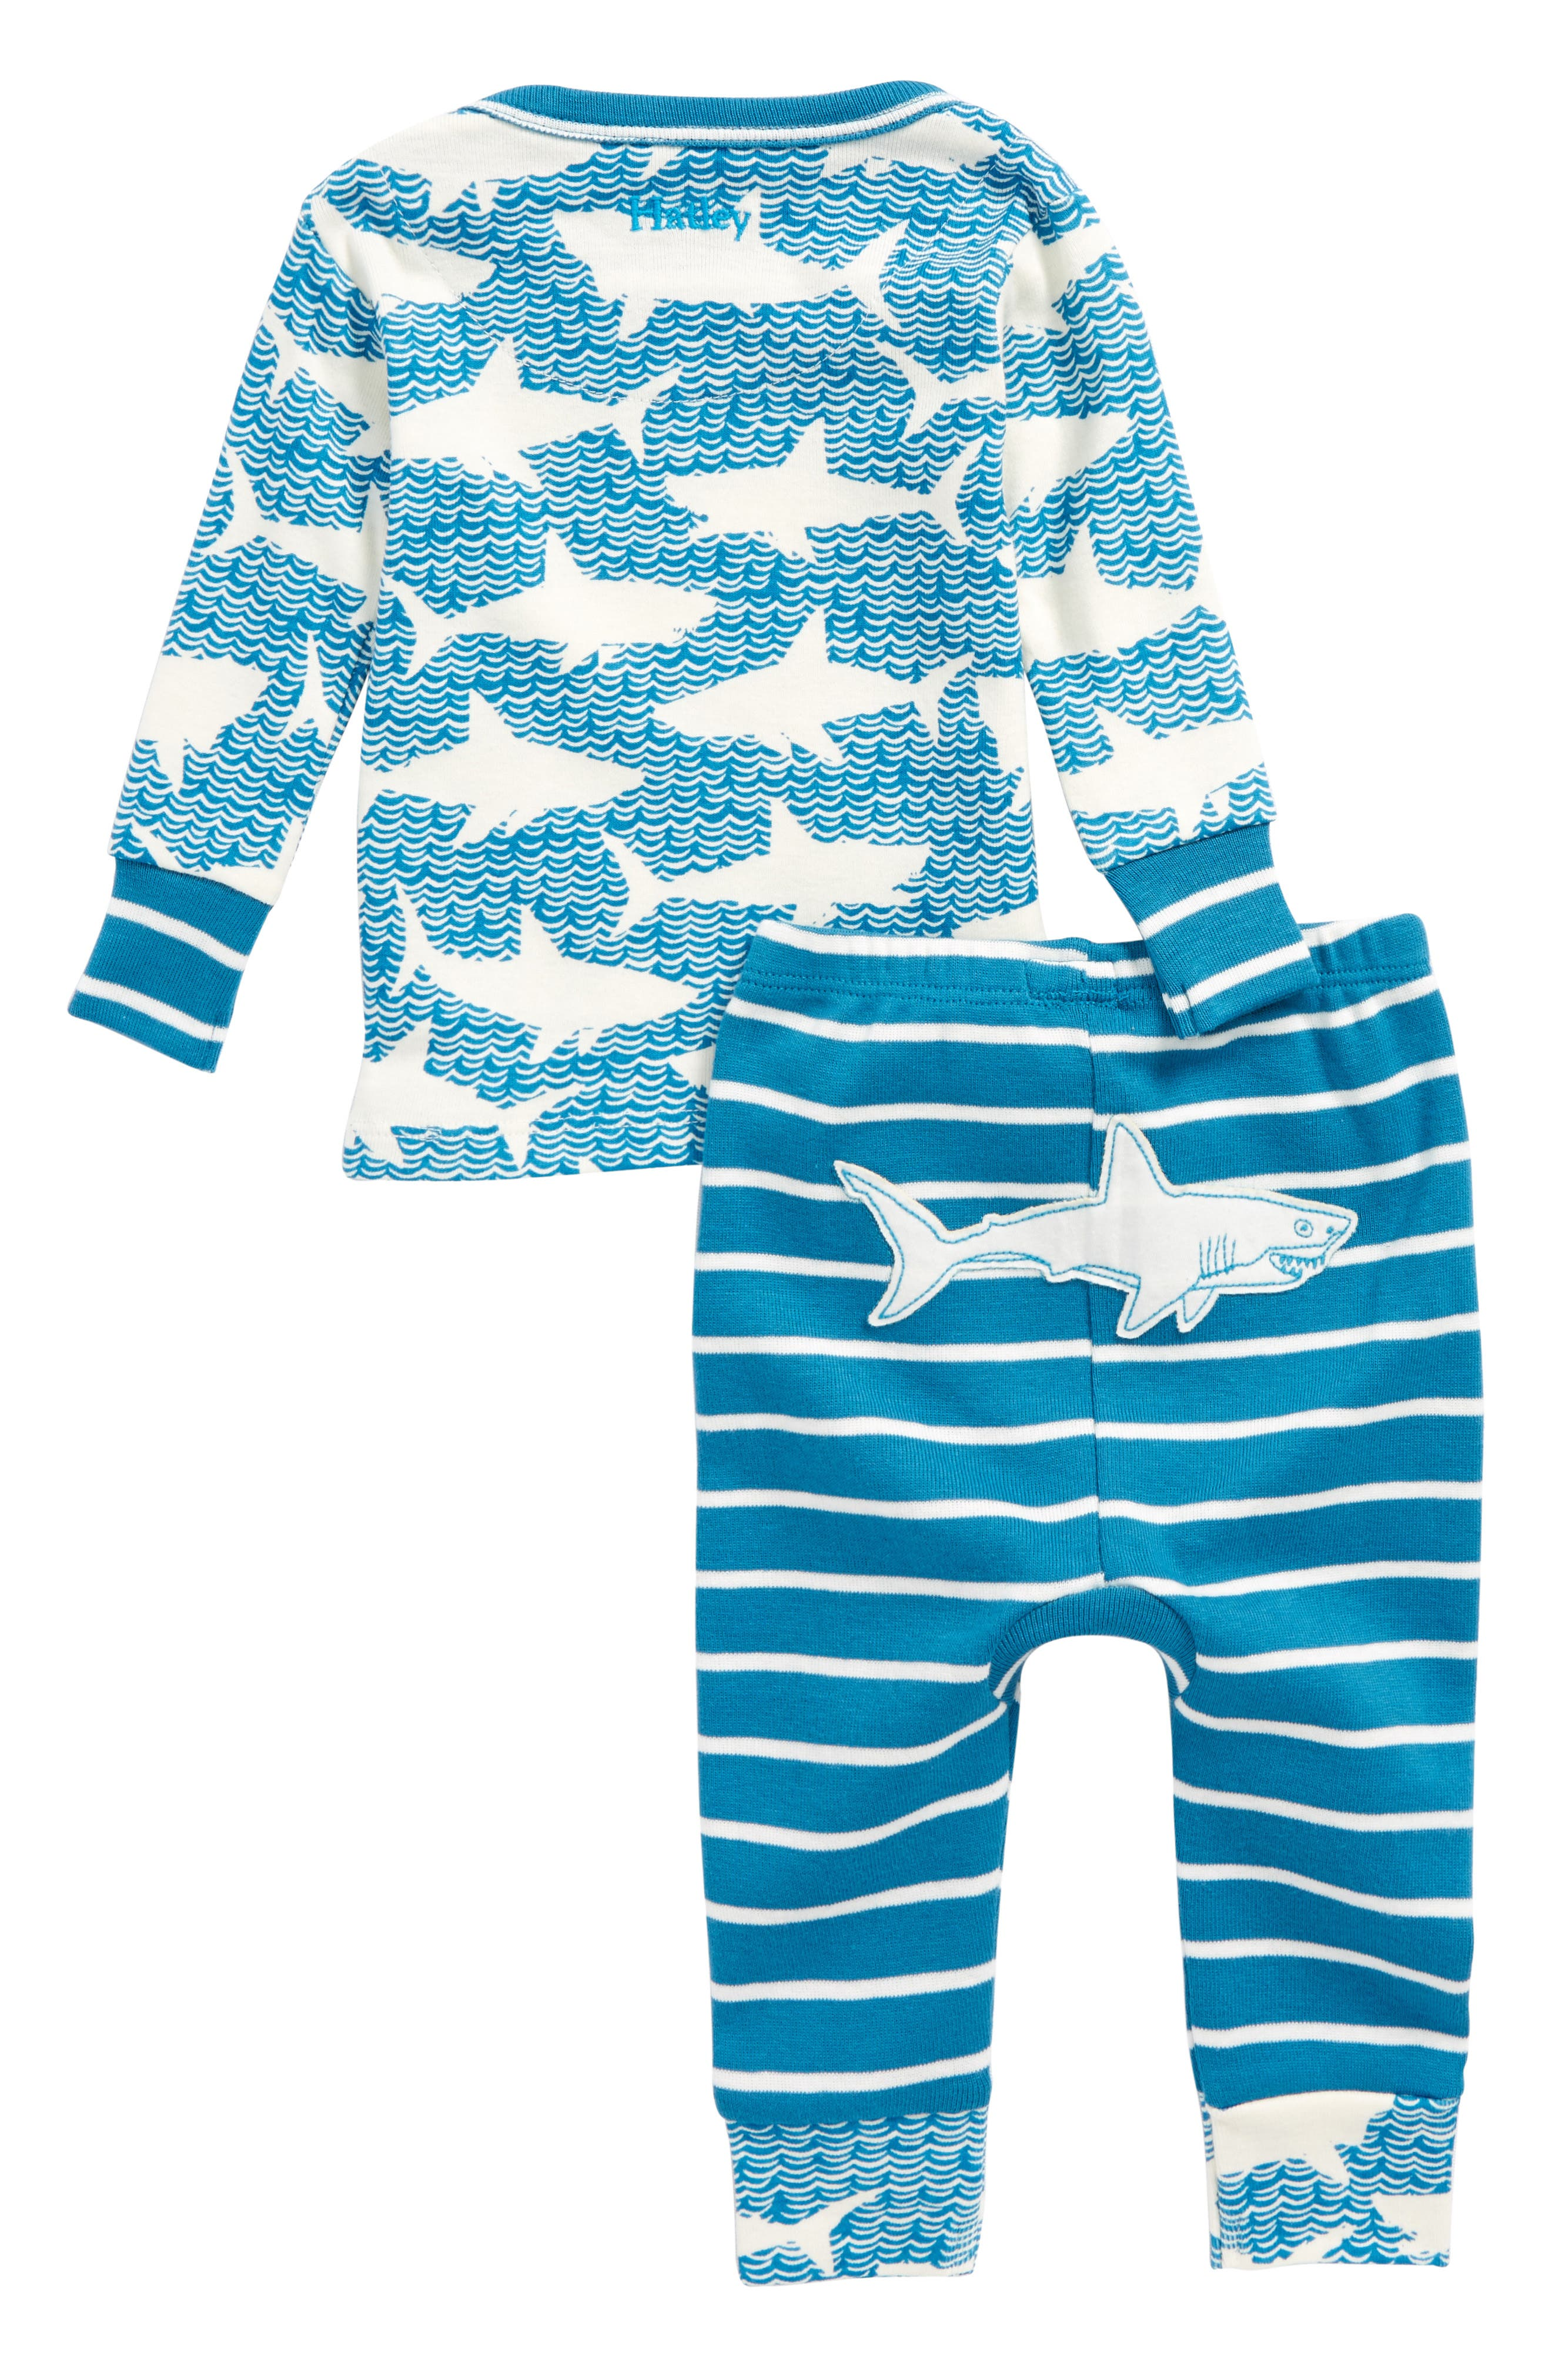 Shark Alley Organic Cotton Fitted Two-Piece Pajamas,                         Main,                         color, Shark Alley